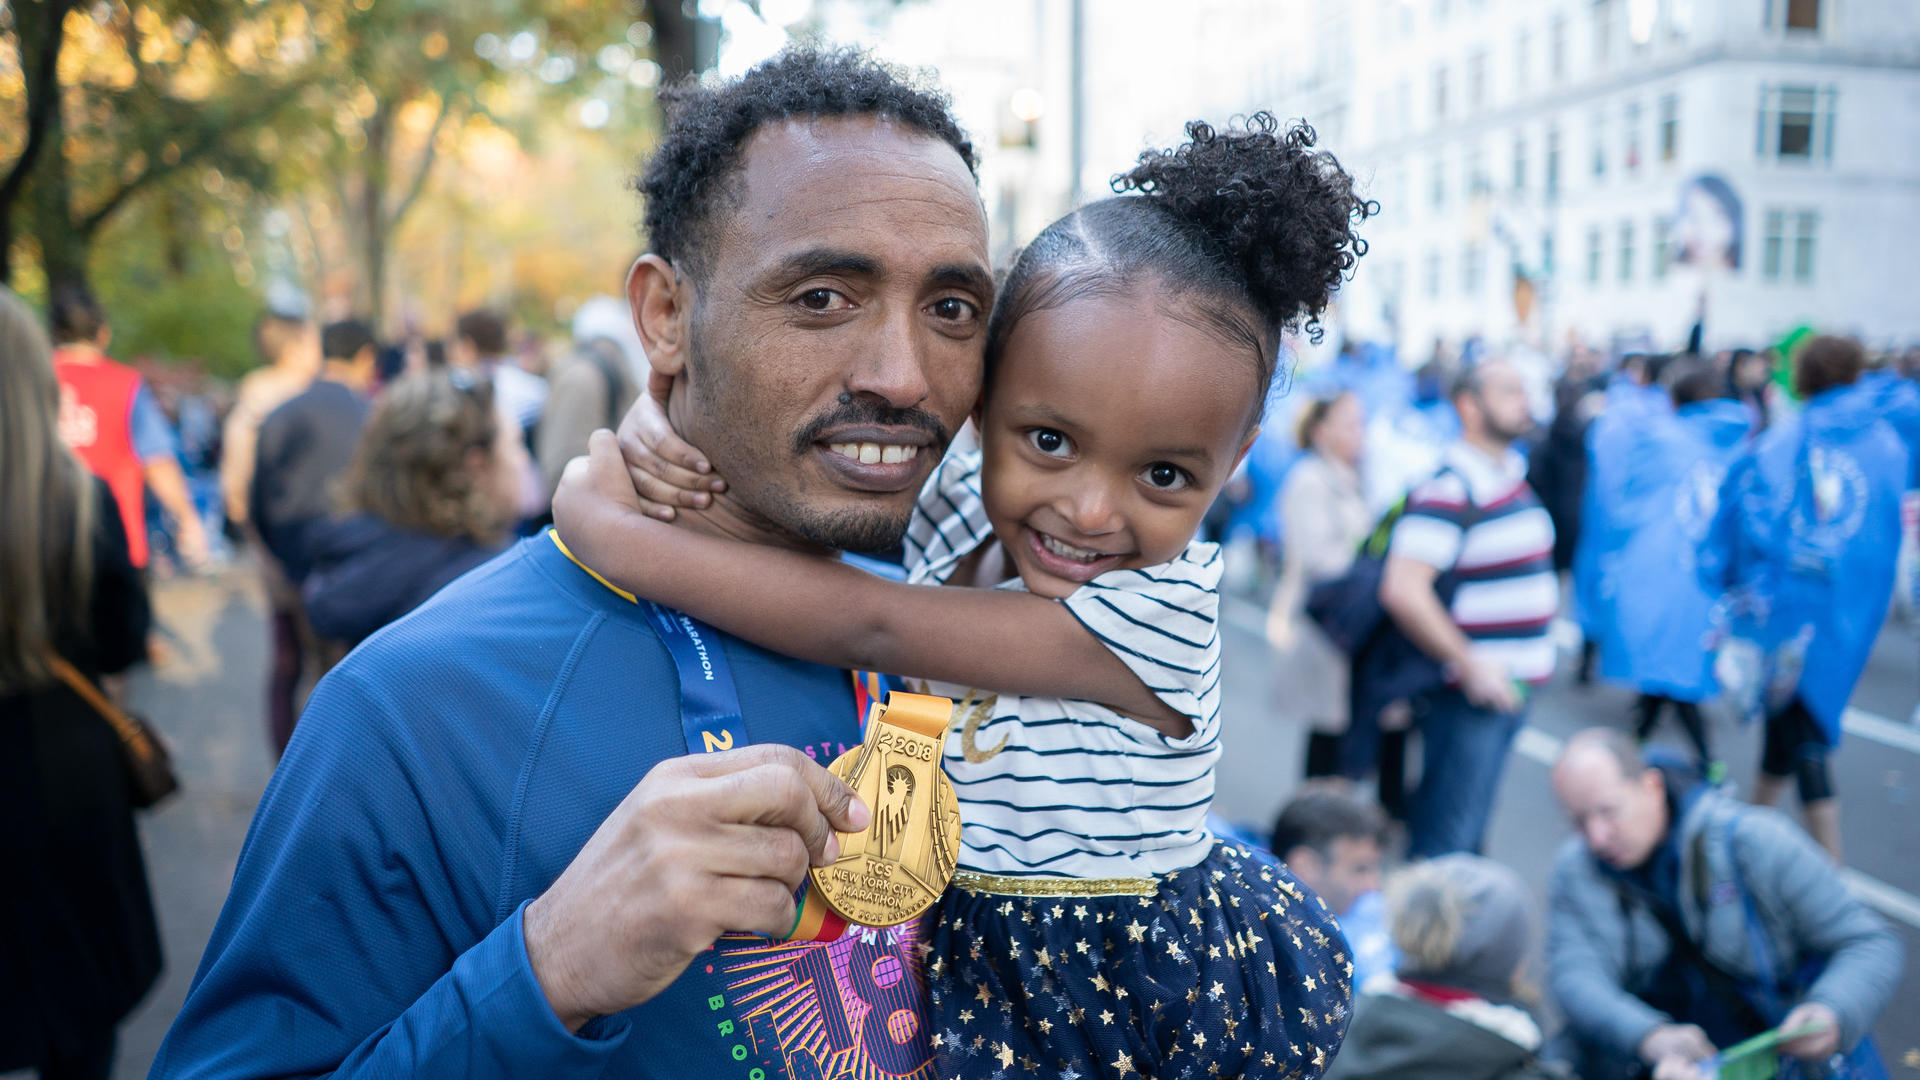 Ethiopian runner Tolassa Elemaa with his daughter after completing the New York City Marathon on Nov. 7, 2018